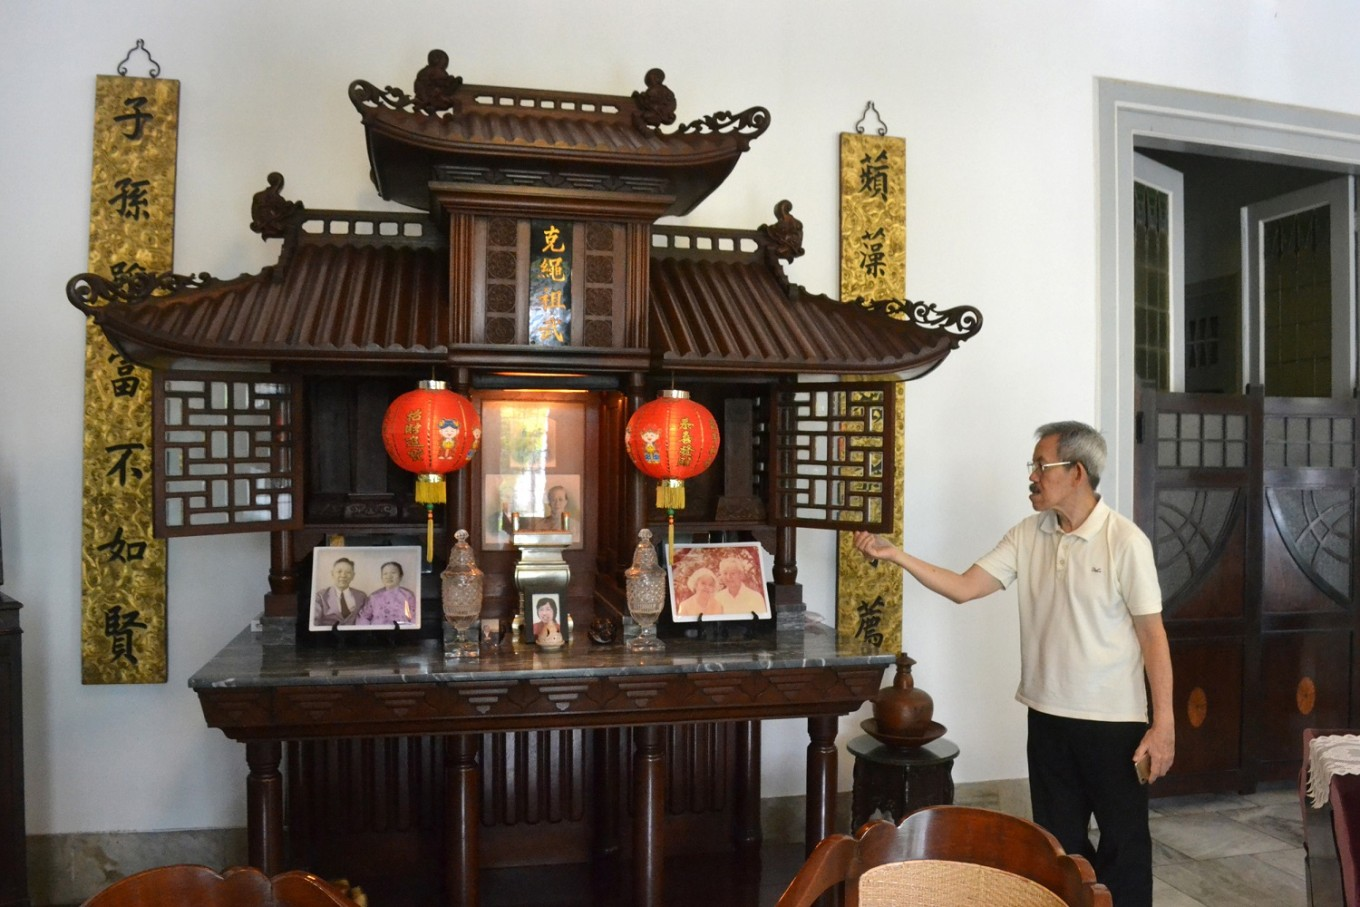 Basuki showcases the family altar. An Indonesian of Chinese descent, his ancestors came from Fujian, China.